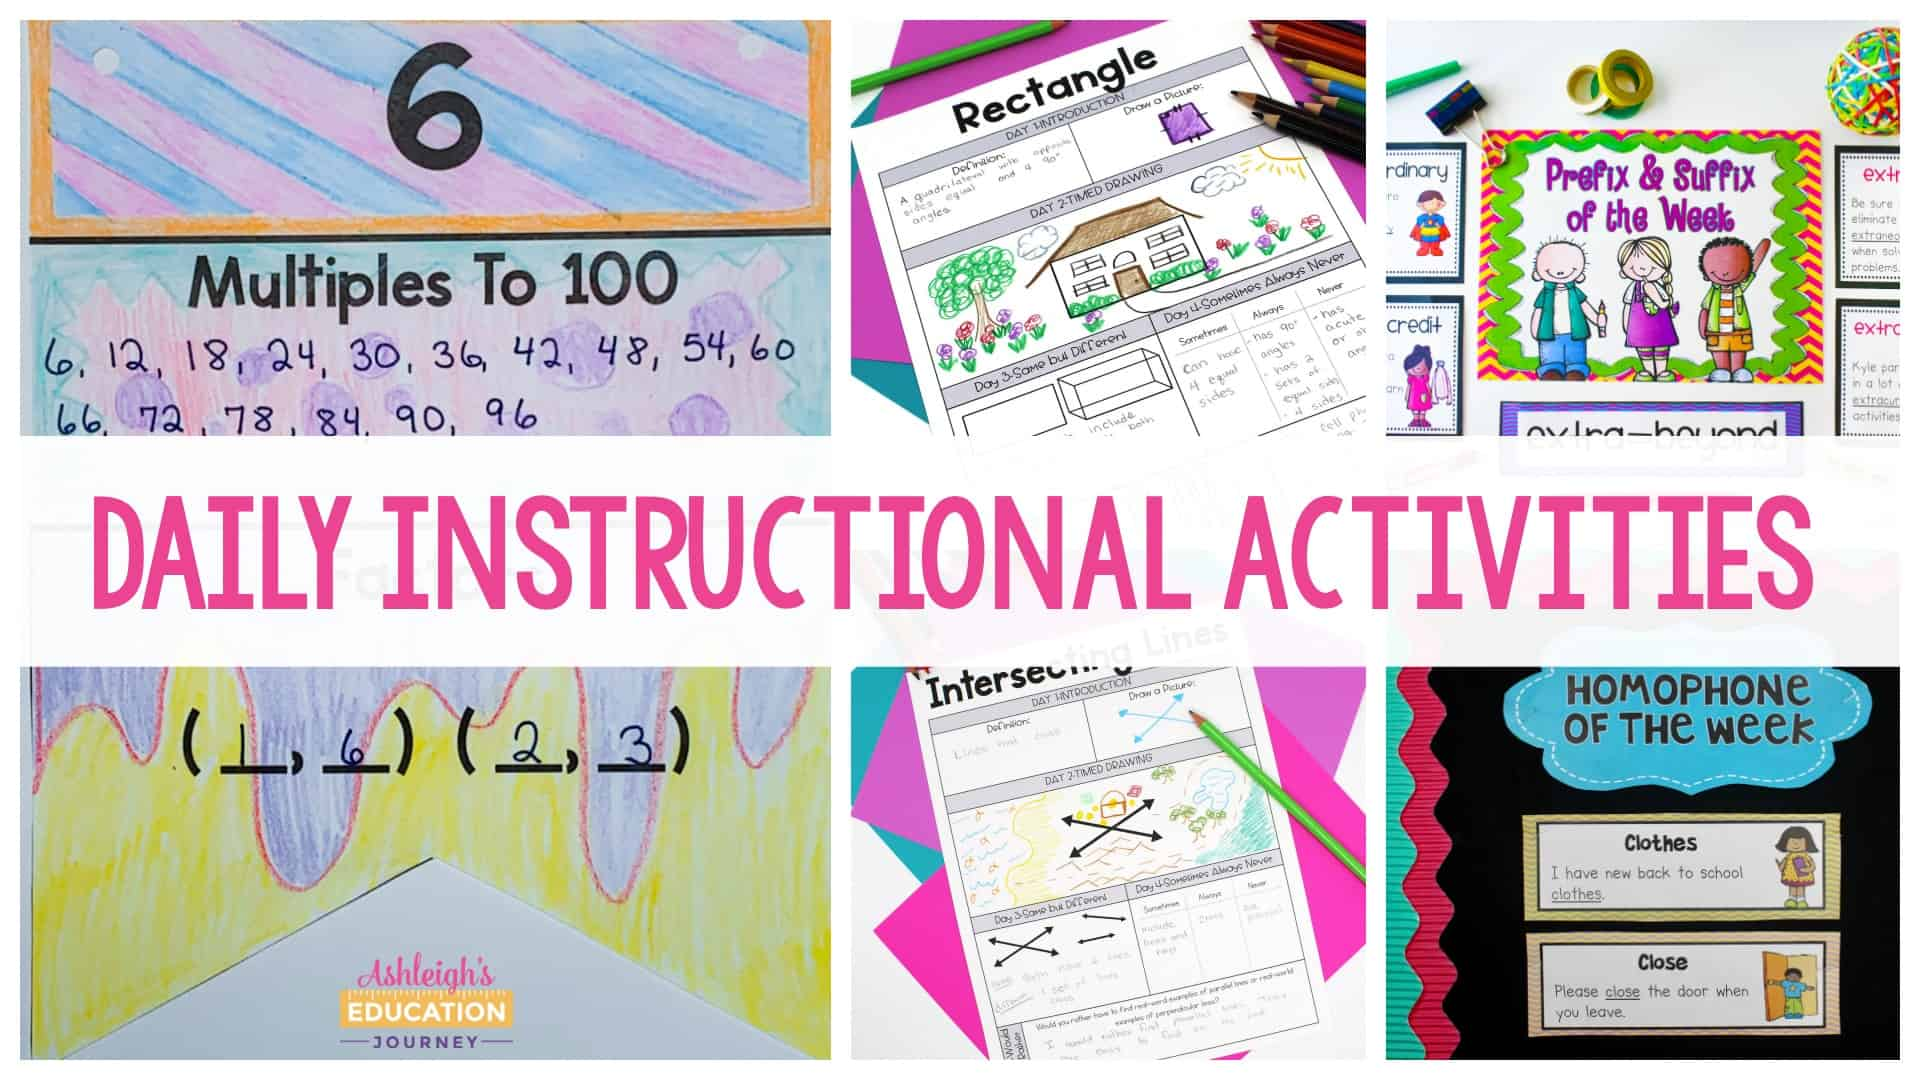 Daily instructional routines and activities header image previewing several student worksheets